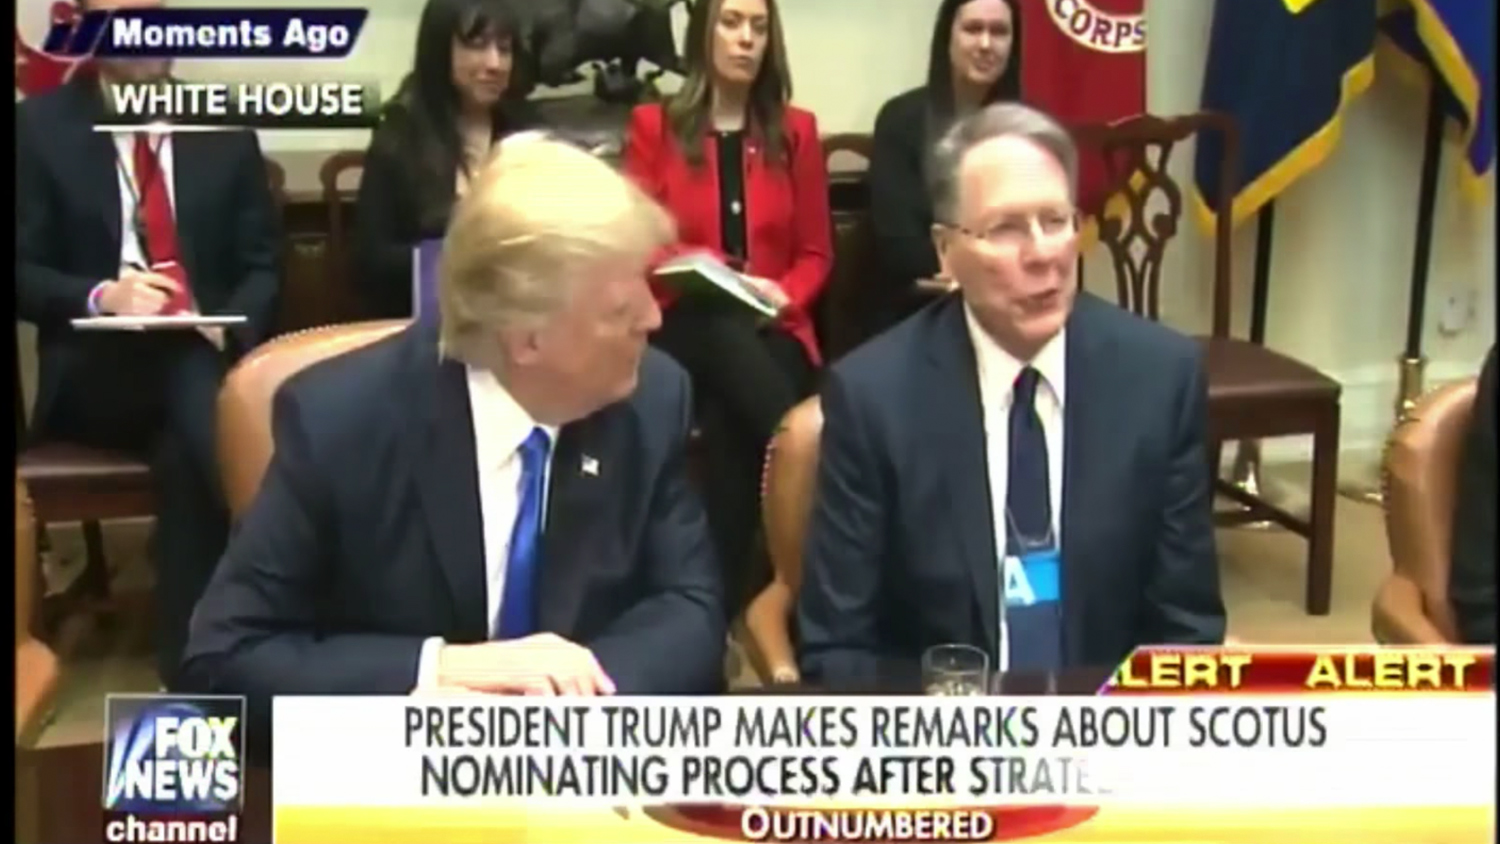 Wayne LaPierre, President Trump: Side-by-Side at White House Meeting